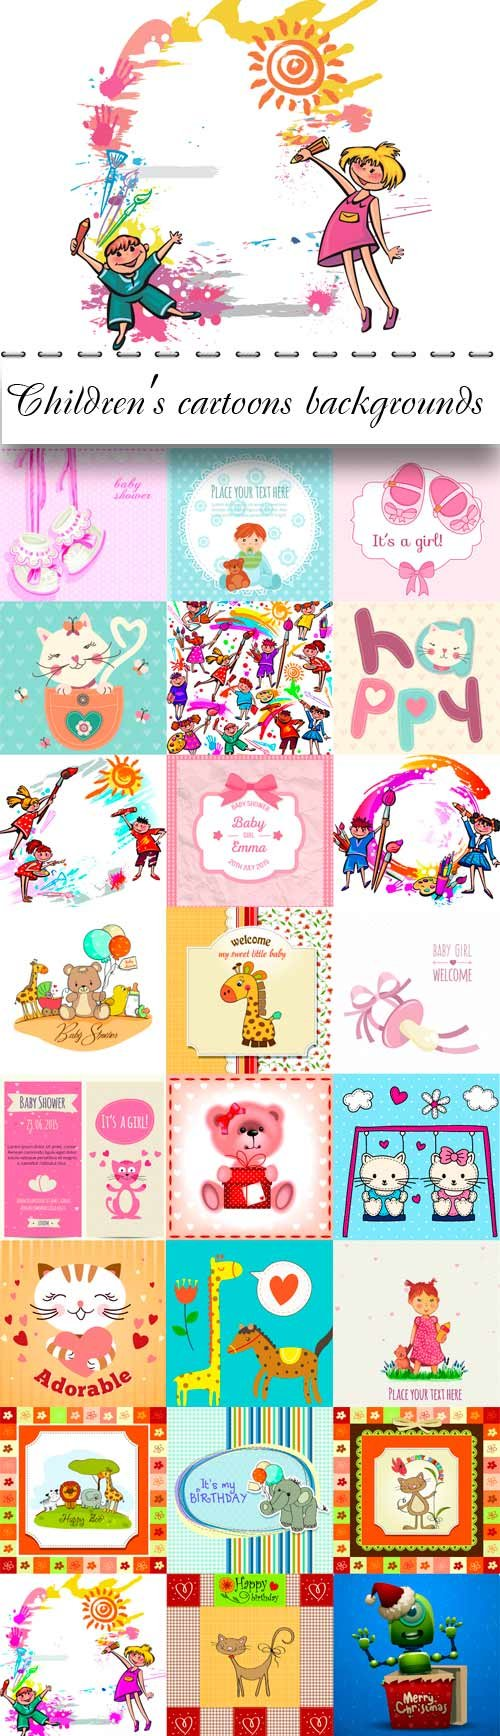 Children's cartoons vector backgrounds